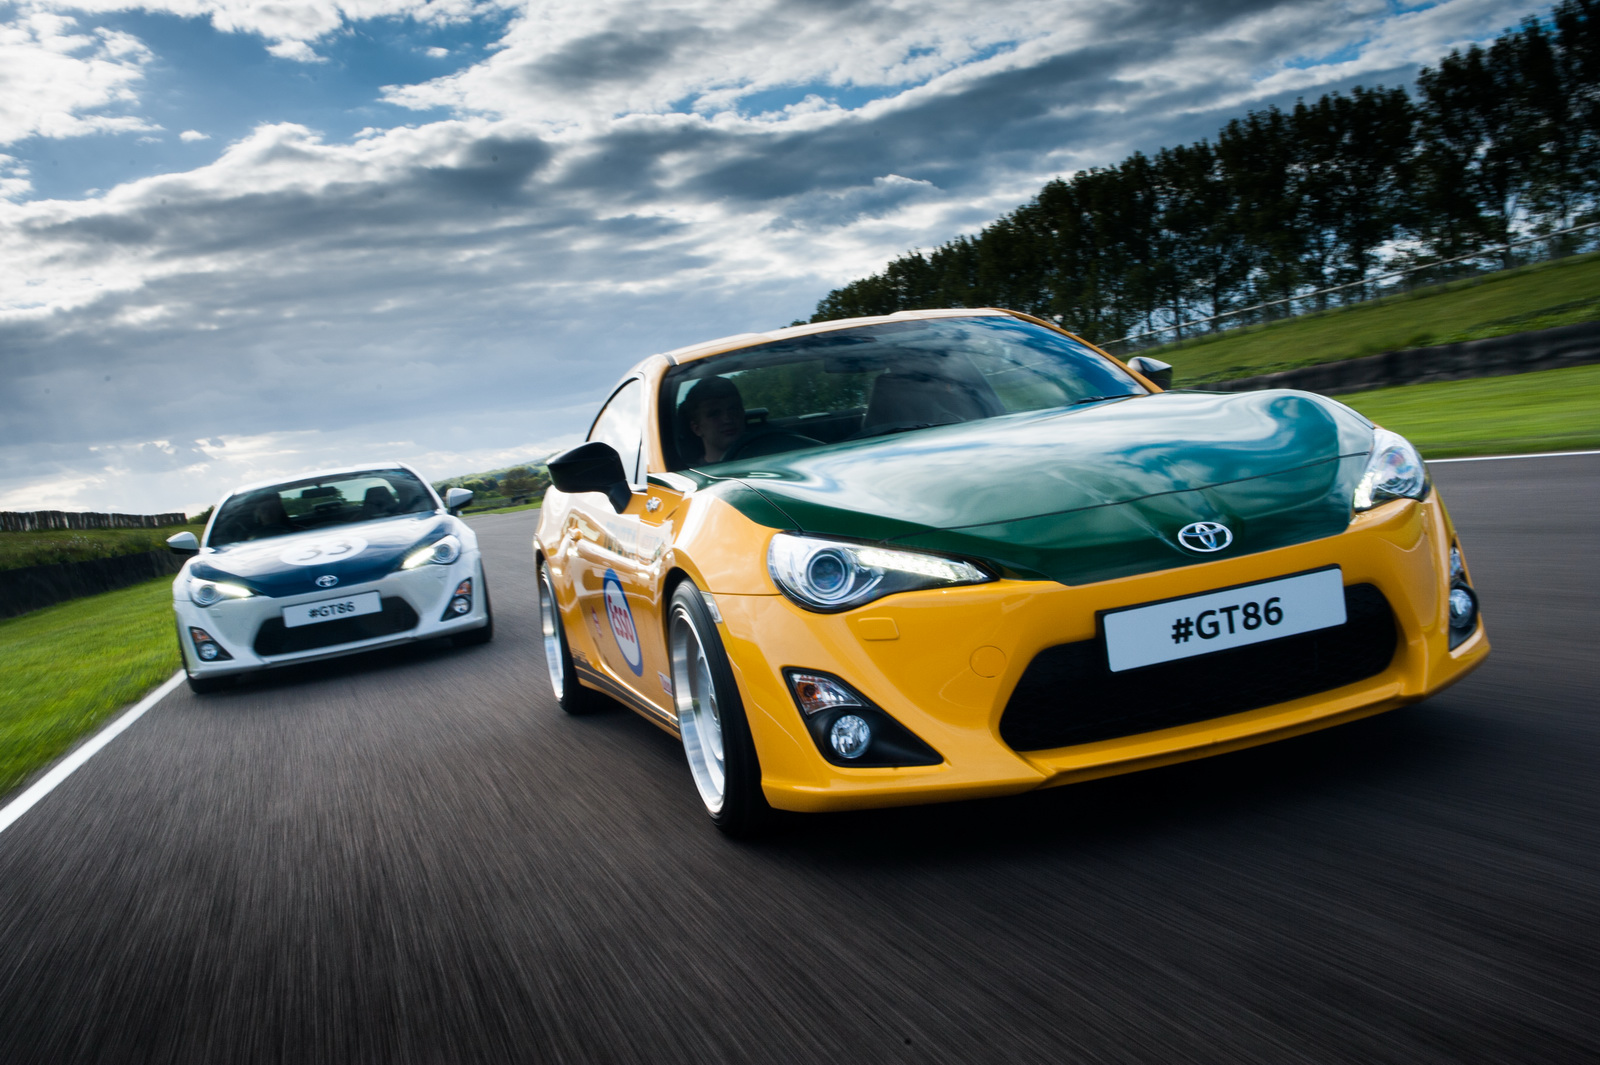 Des Toyota GT86 en robes d'époque - Photo n°8